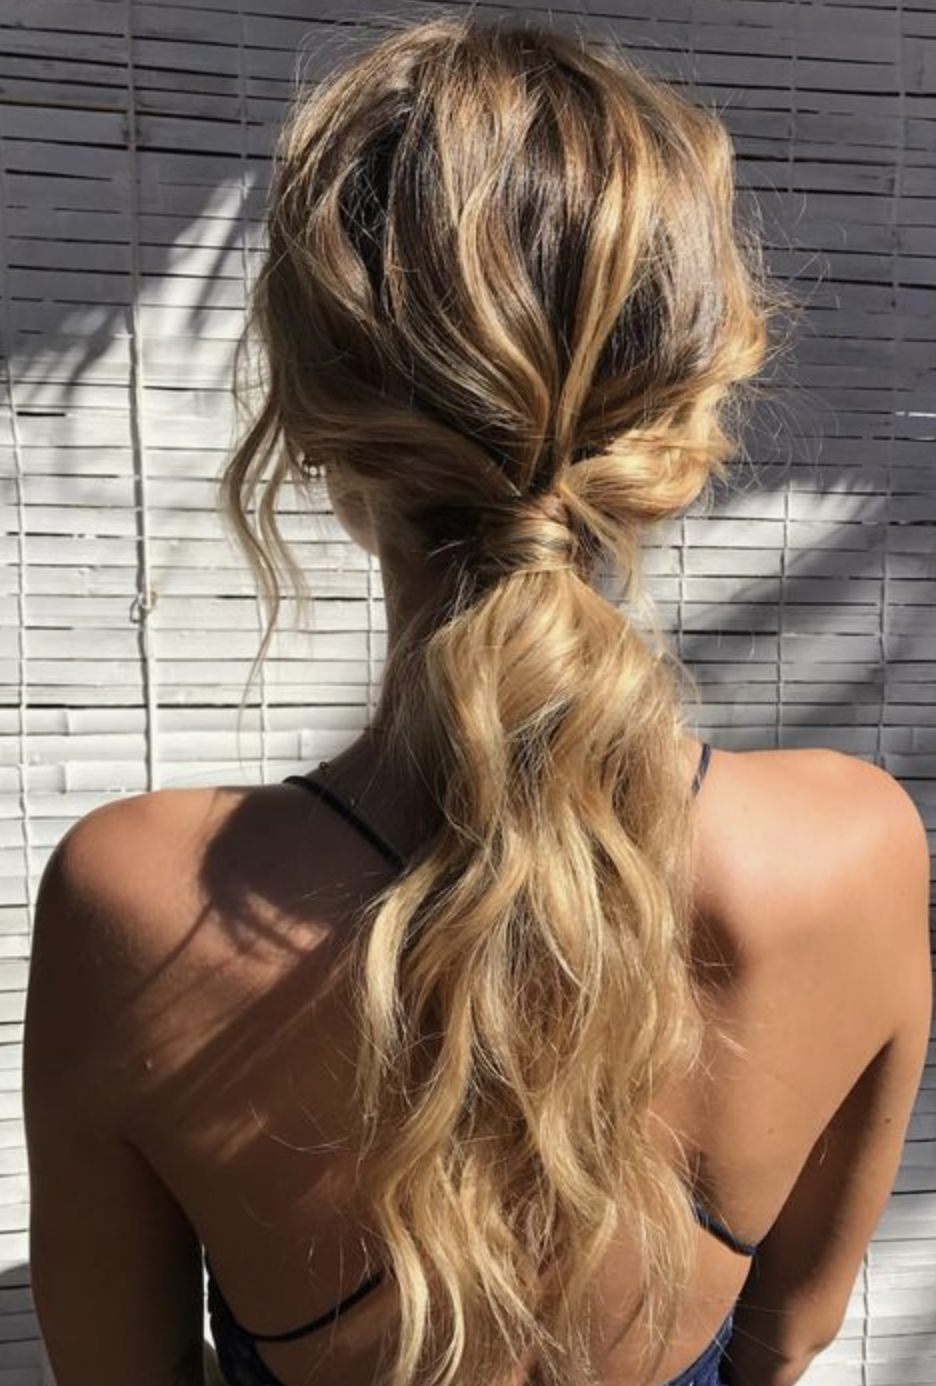 Pinterest ucaseyu super cute twisted messy pony hairstyle follow